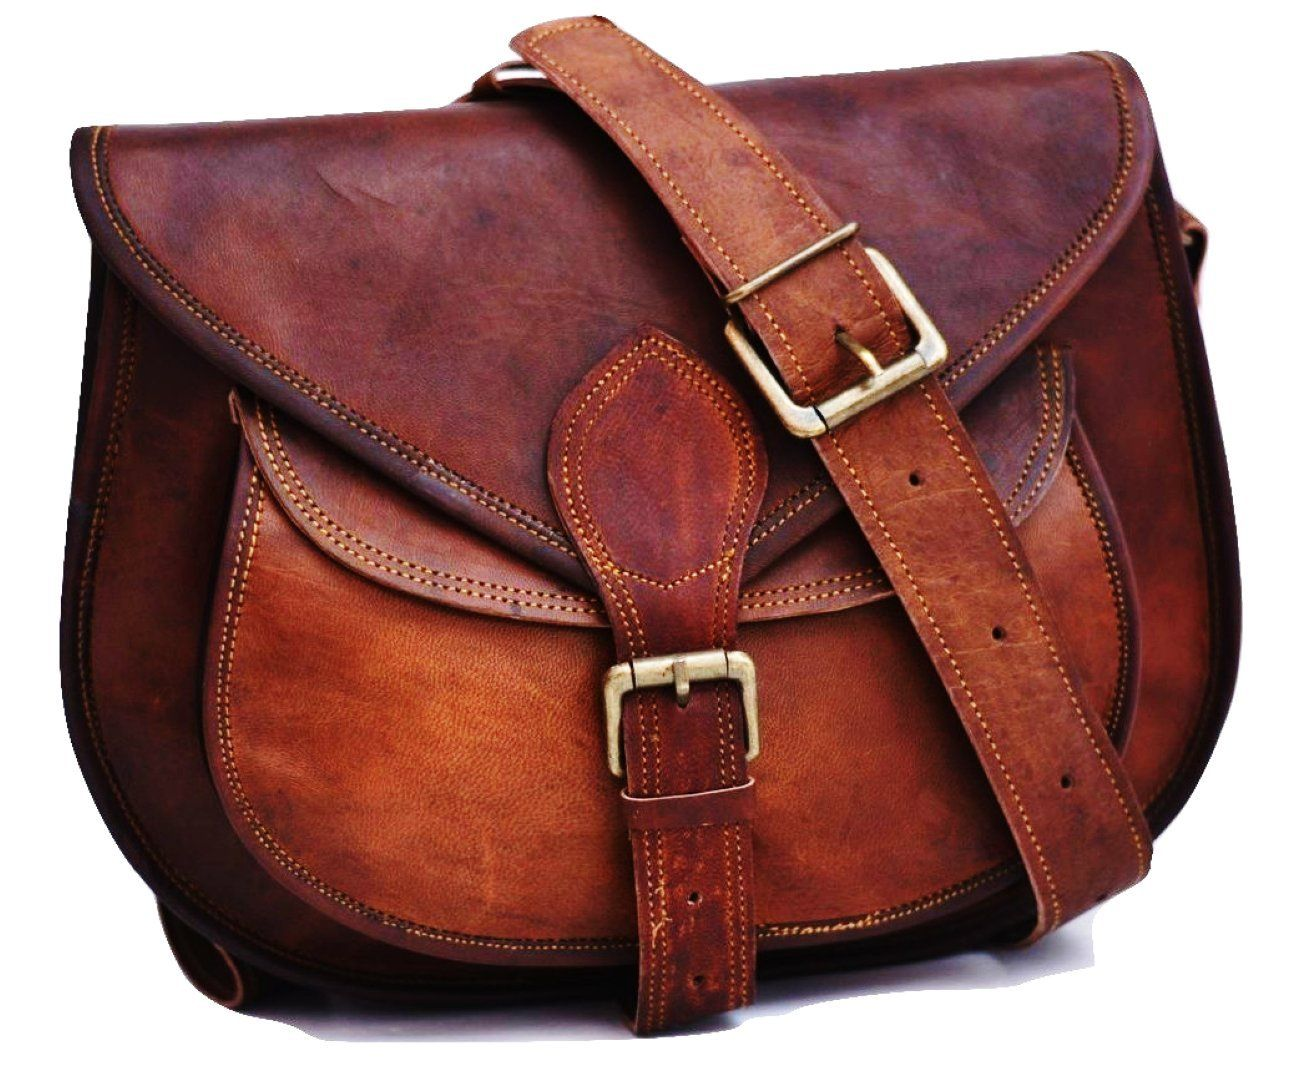 Satchel And Fable Handmade Women Vintage Style Genuine Brown Leather Cross Body Shoulder Bag Handmade Purse In 2020 Purses Crossbody Shoulder Bag Women Trendy Purses